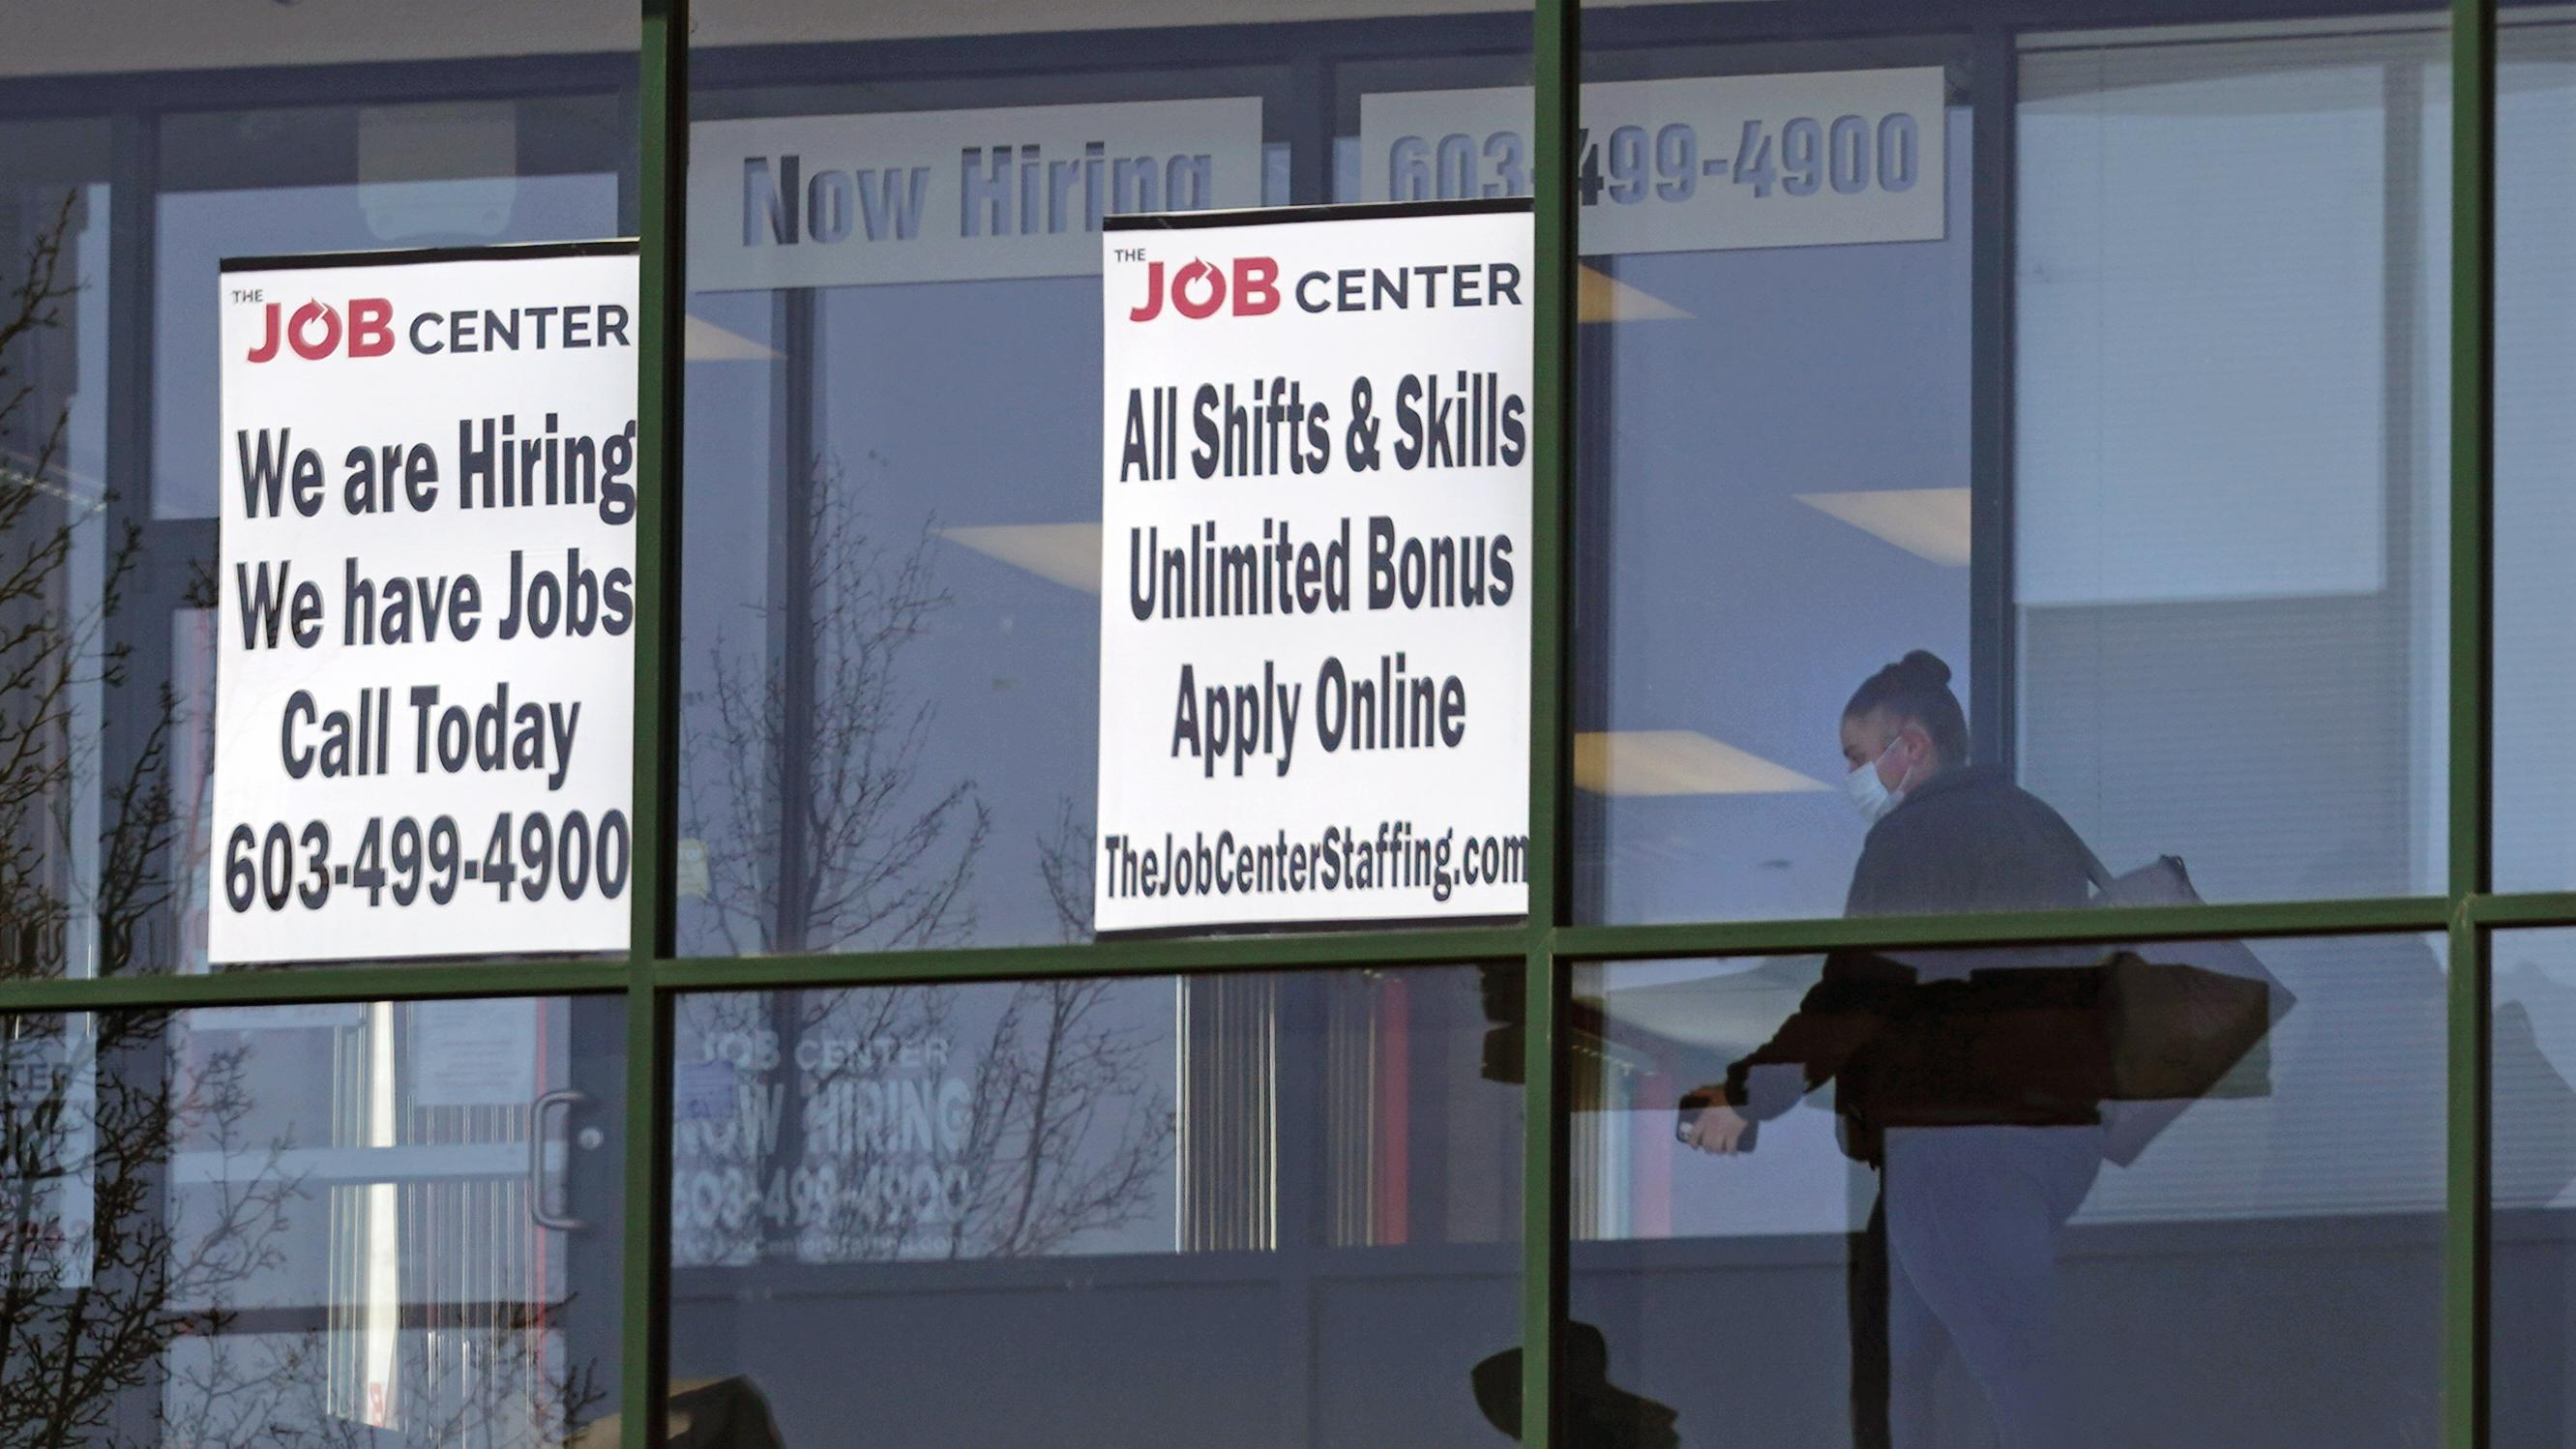 U.S. Showing Hiring Gain, Lower Unemployment . . . But For How Long Amidst Pandemic